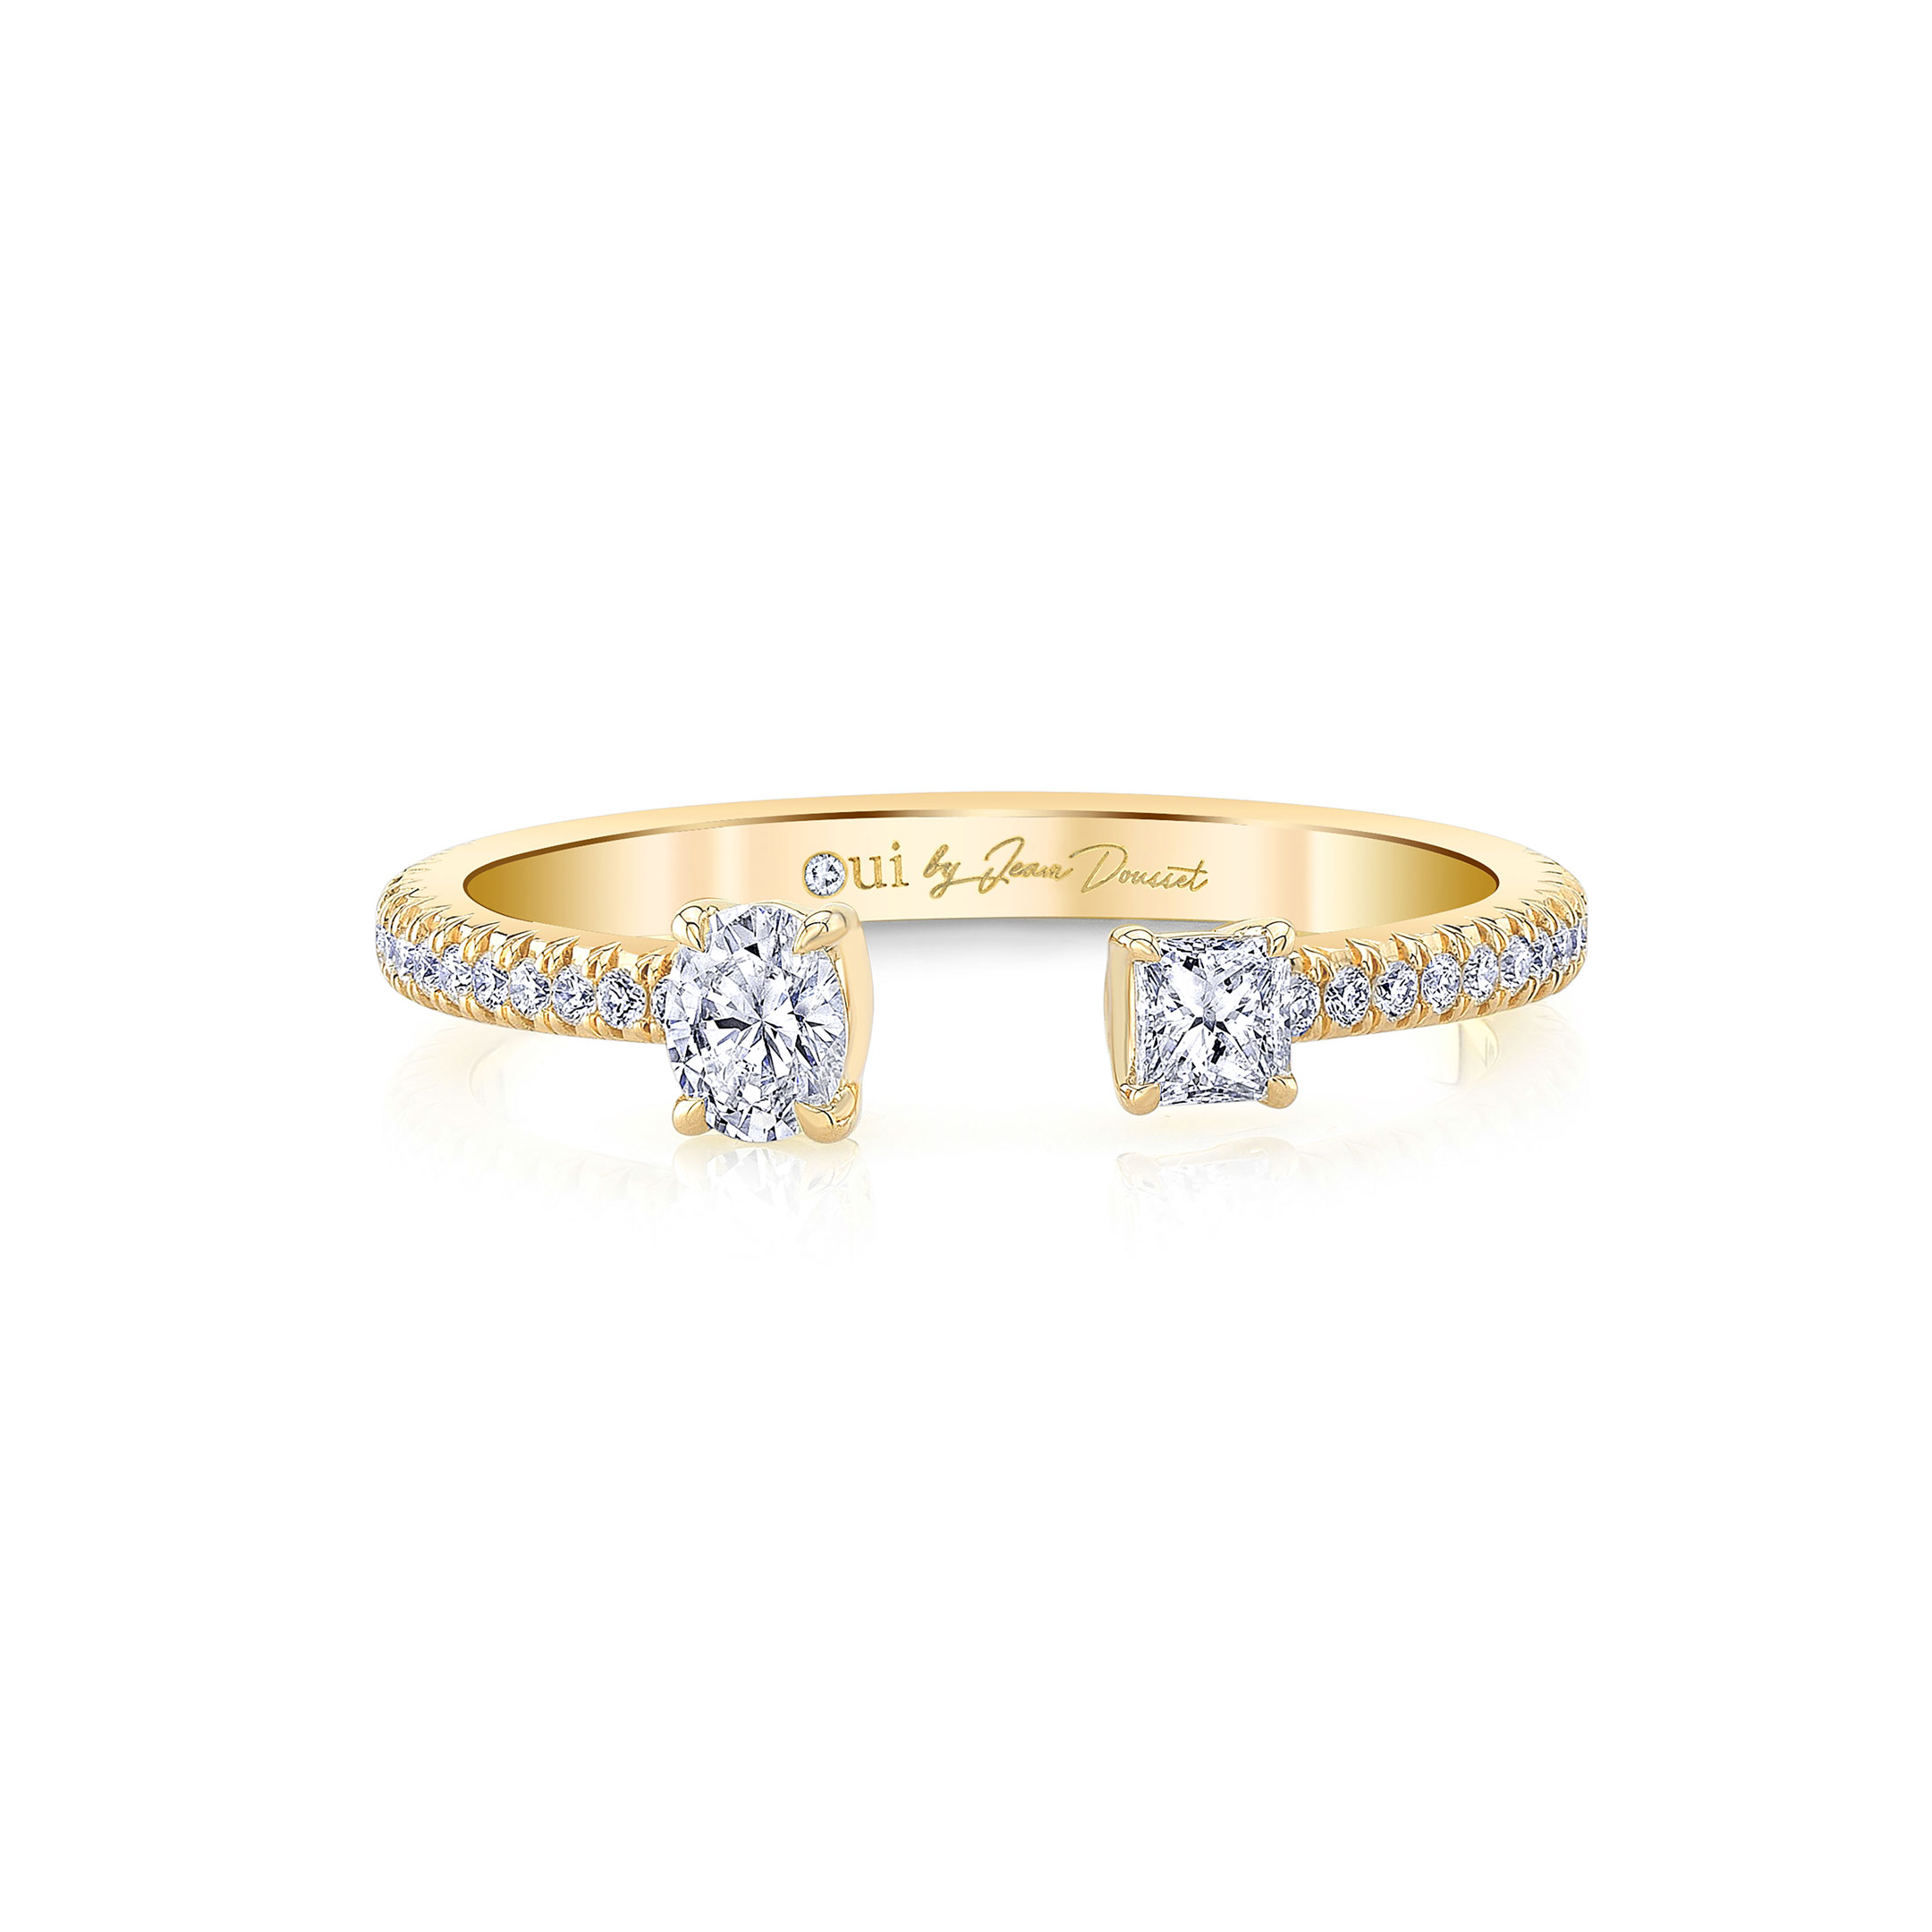 Celeste Mixed Diamond Open Pavé Ring, oval & princess in 18k Yellow Gold Front View by Oui by Jean Dousset